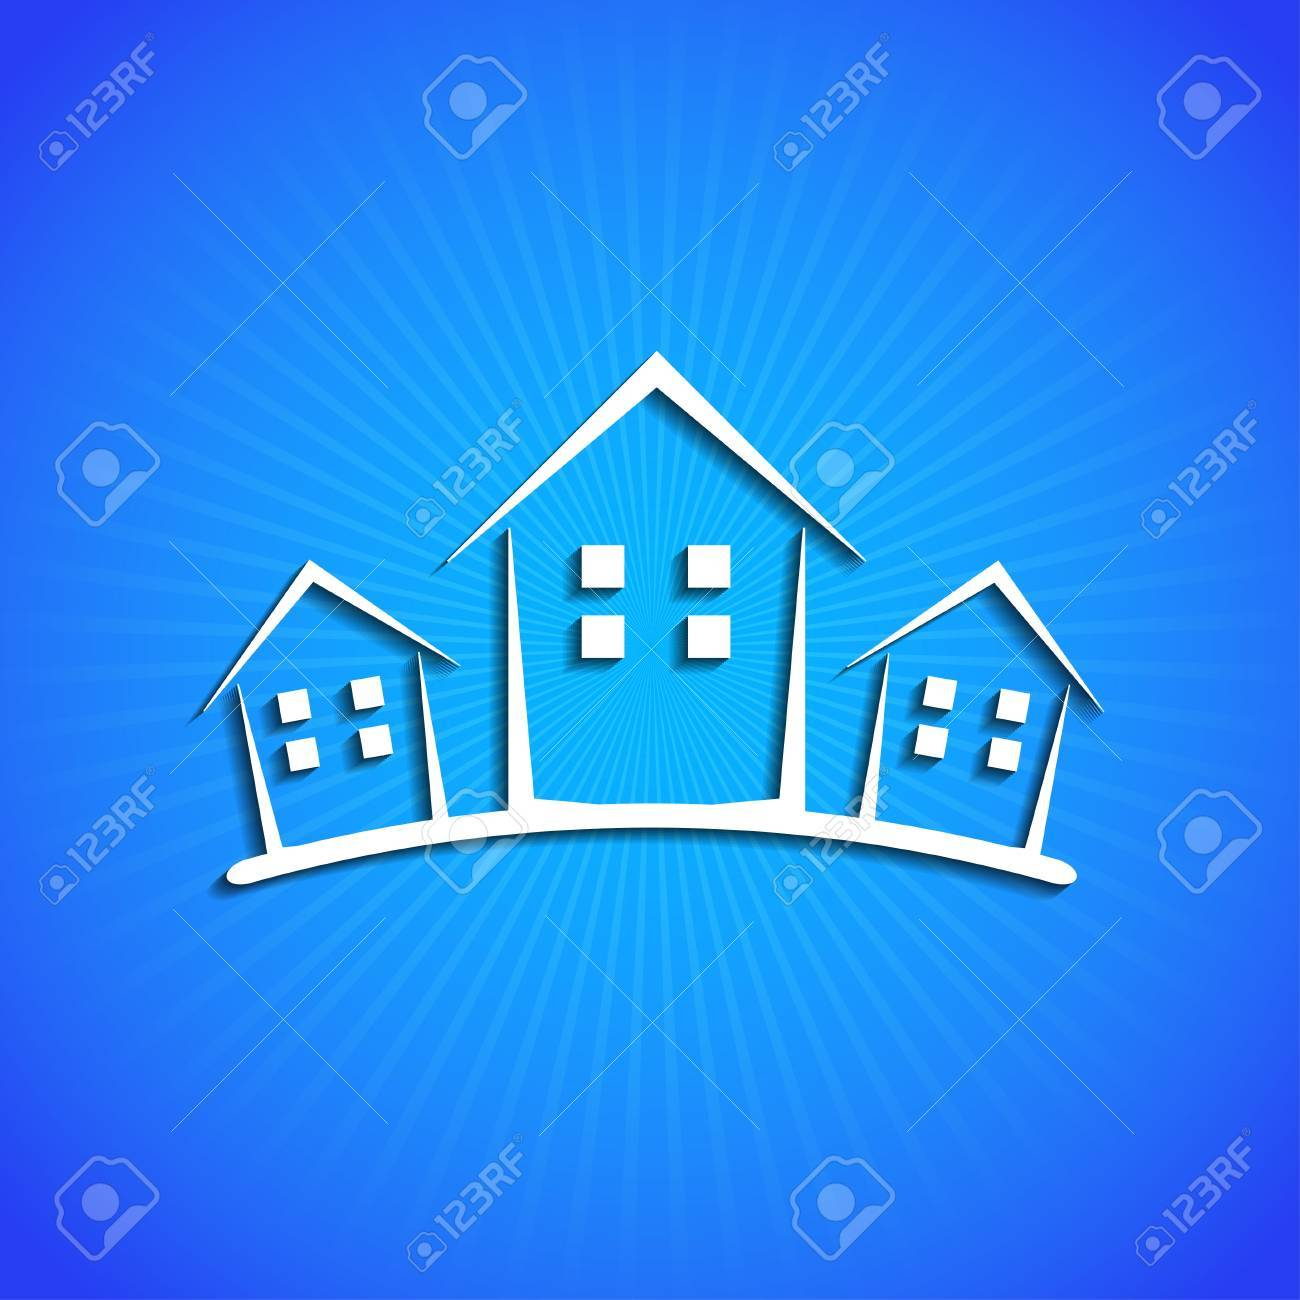 icon on blue background. Stock Vector - 17681746